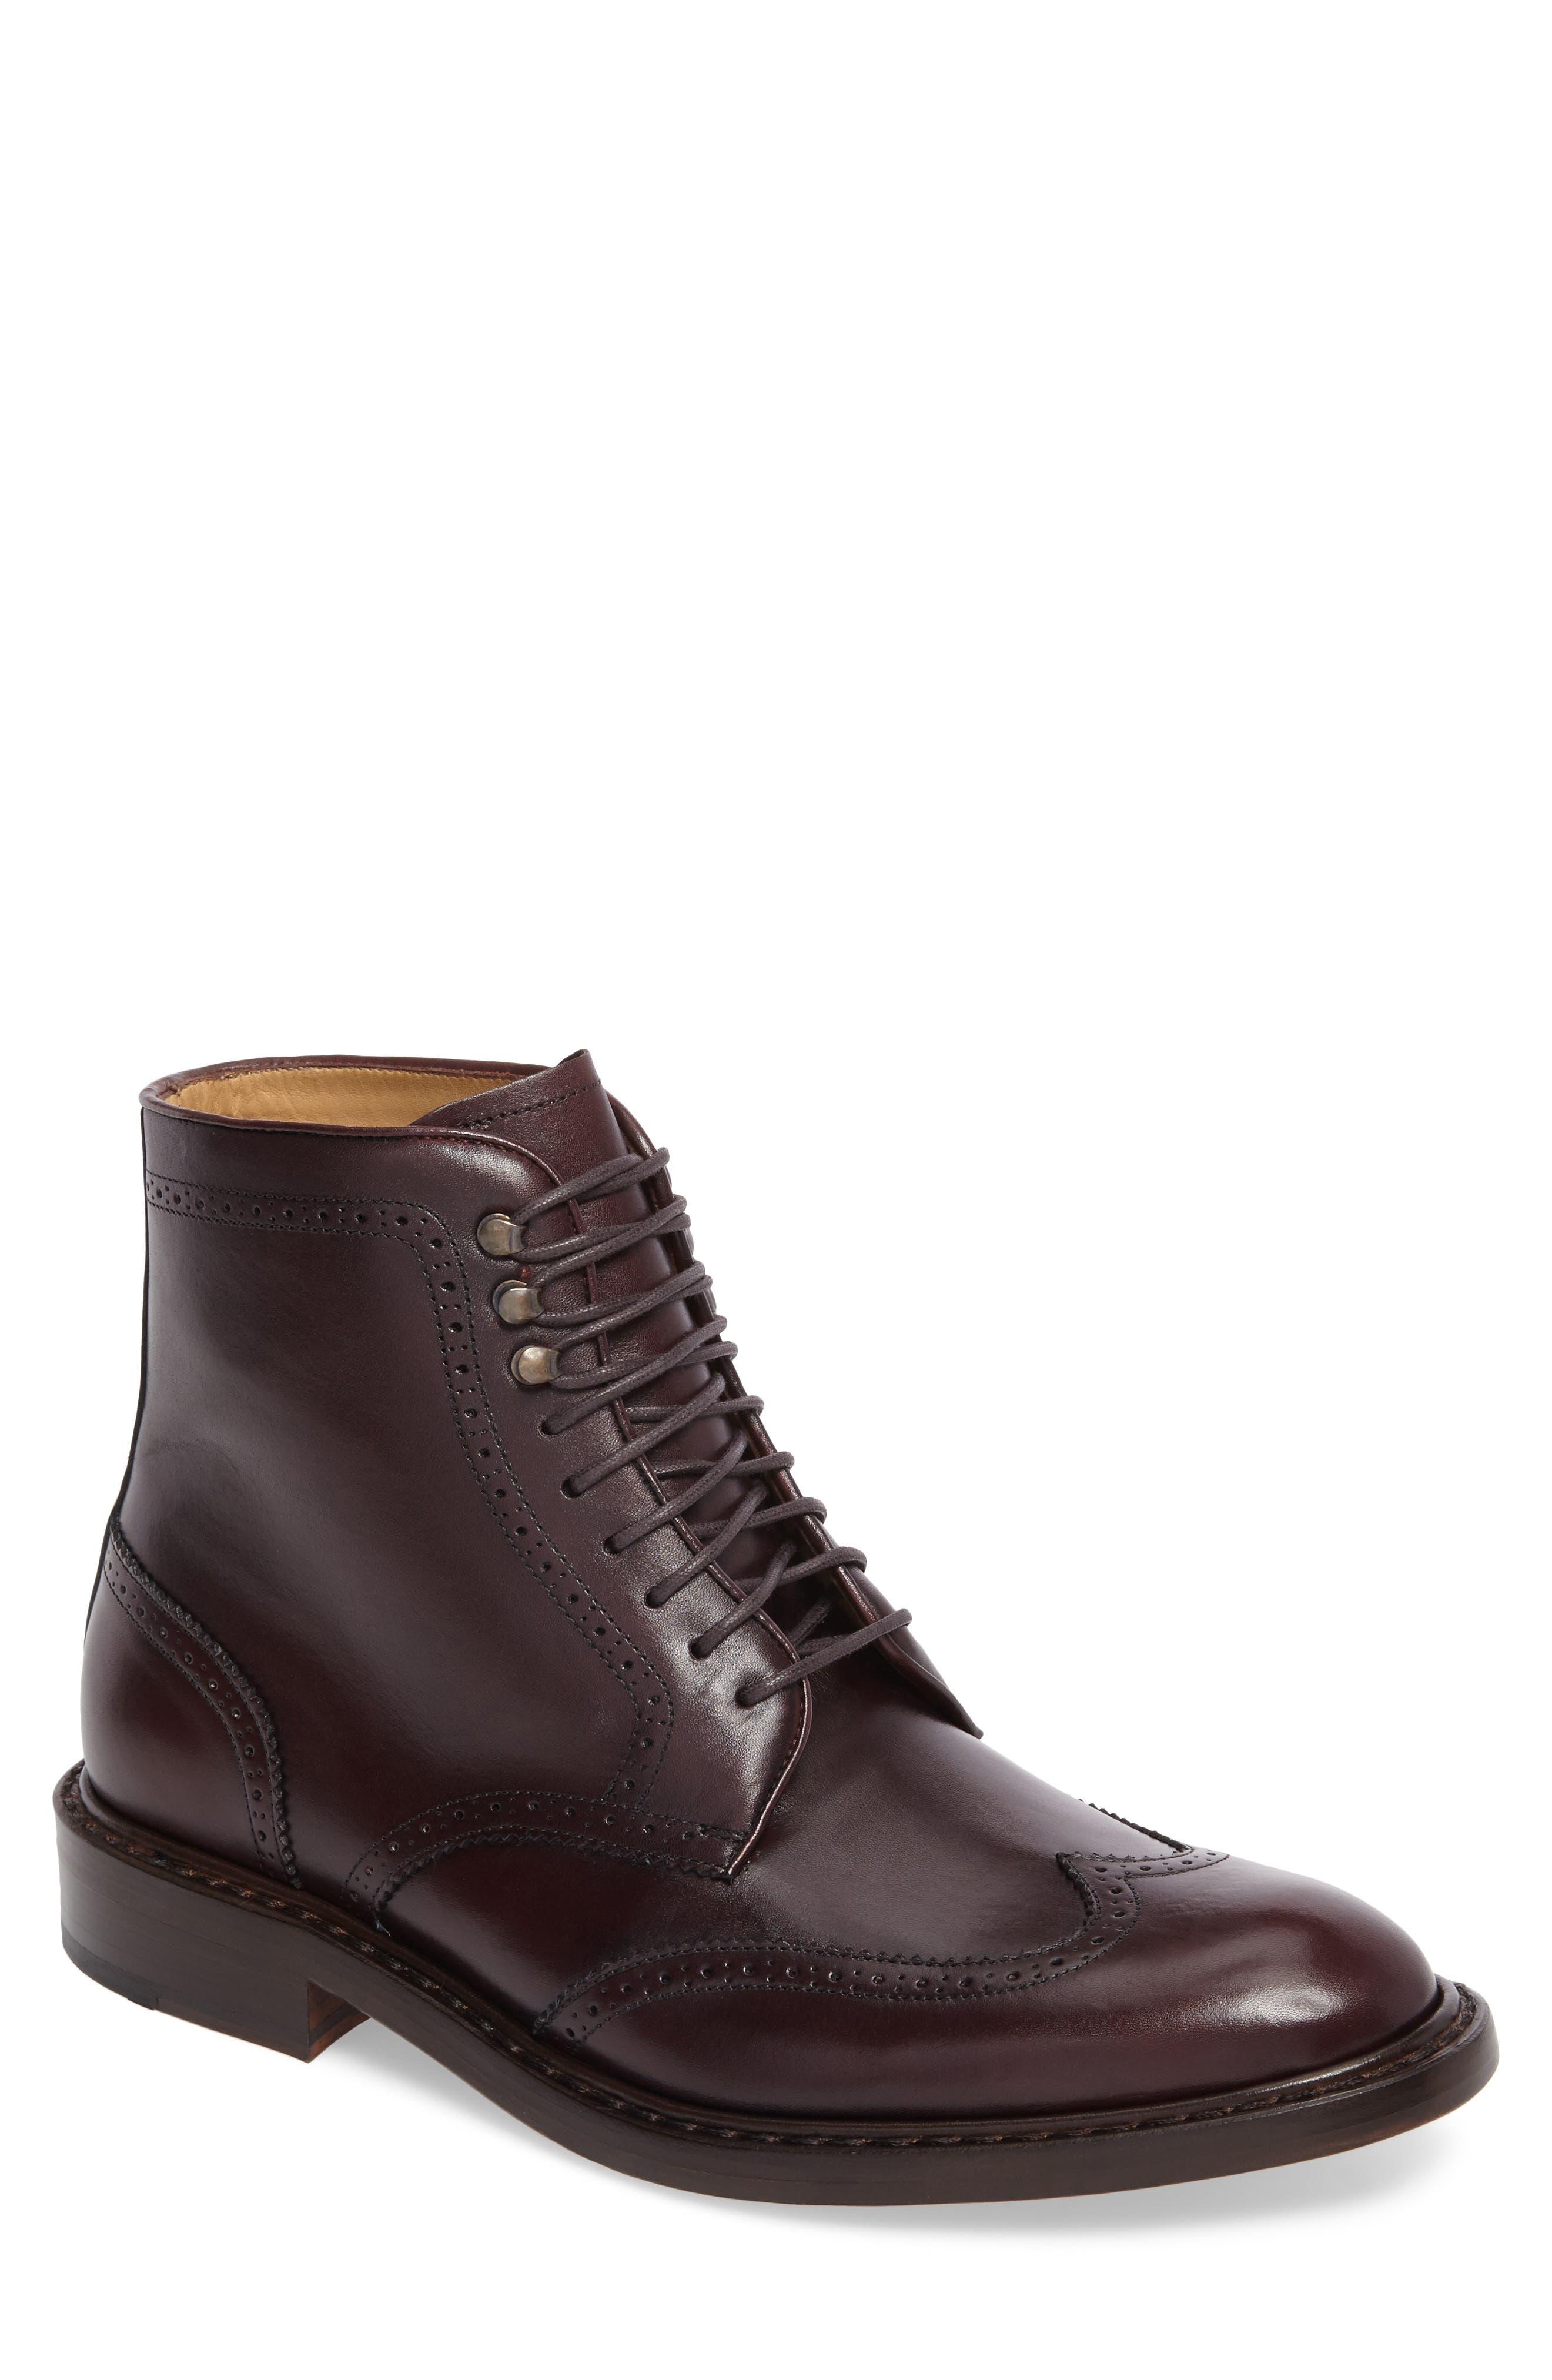 Carter Wingtip Boot,                             Main thumbnail 1, color,                             Burgundy Leather